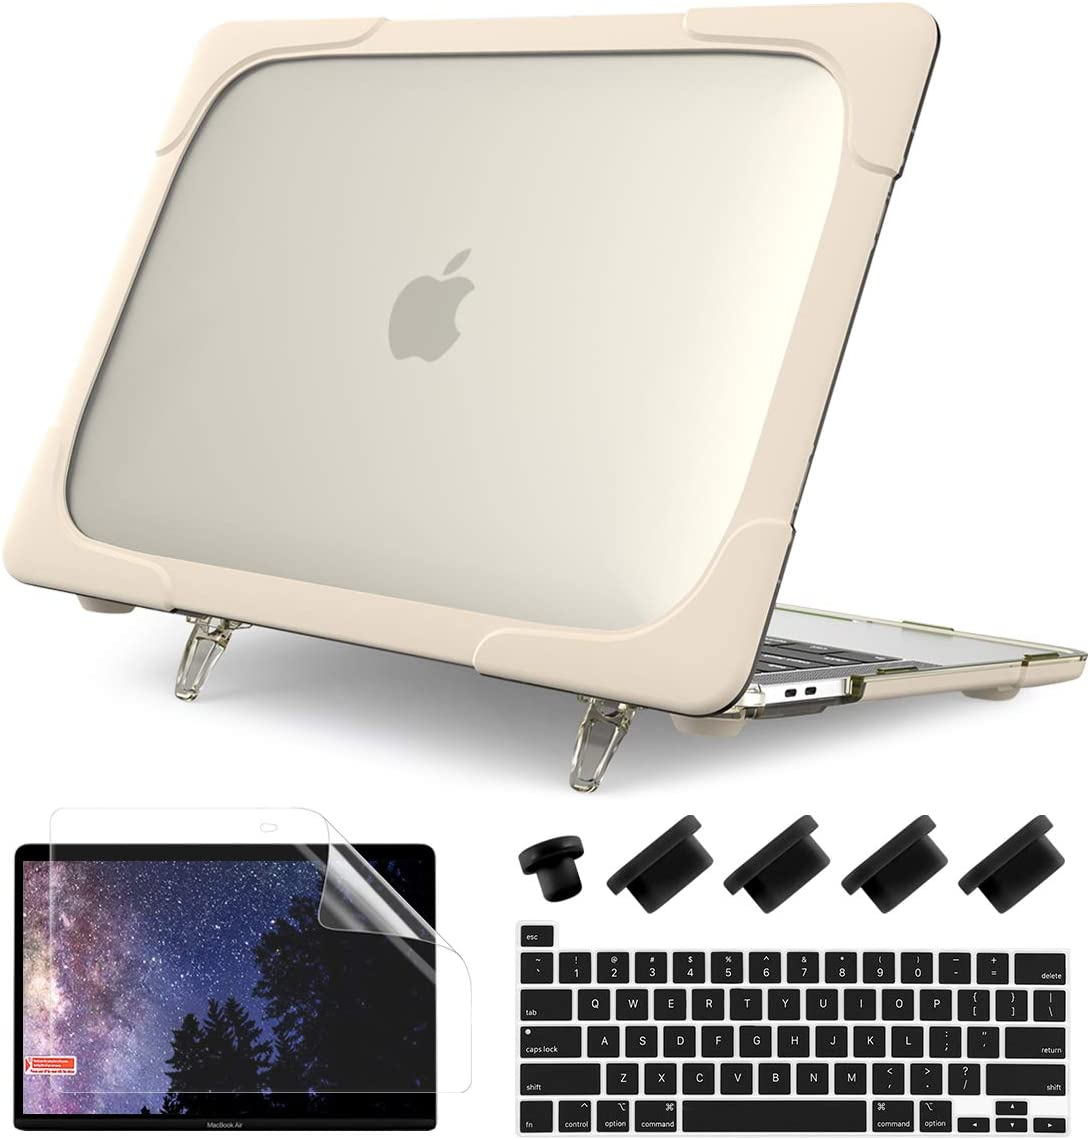 Batainda for MacBook Pro 13 Inch Case M1 A2338 A2289 A2251 (2020 Release), Heavy Duty Full Protection Hard Shell Cover with Fold Kickstand for New MacBook Pro 13'' Touch Bar & Touch ID,Khaki